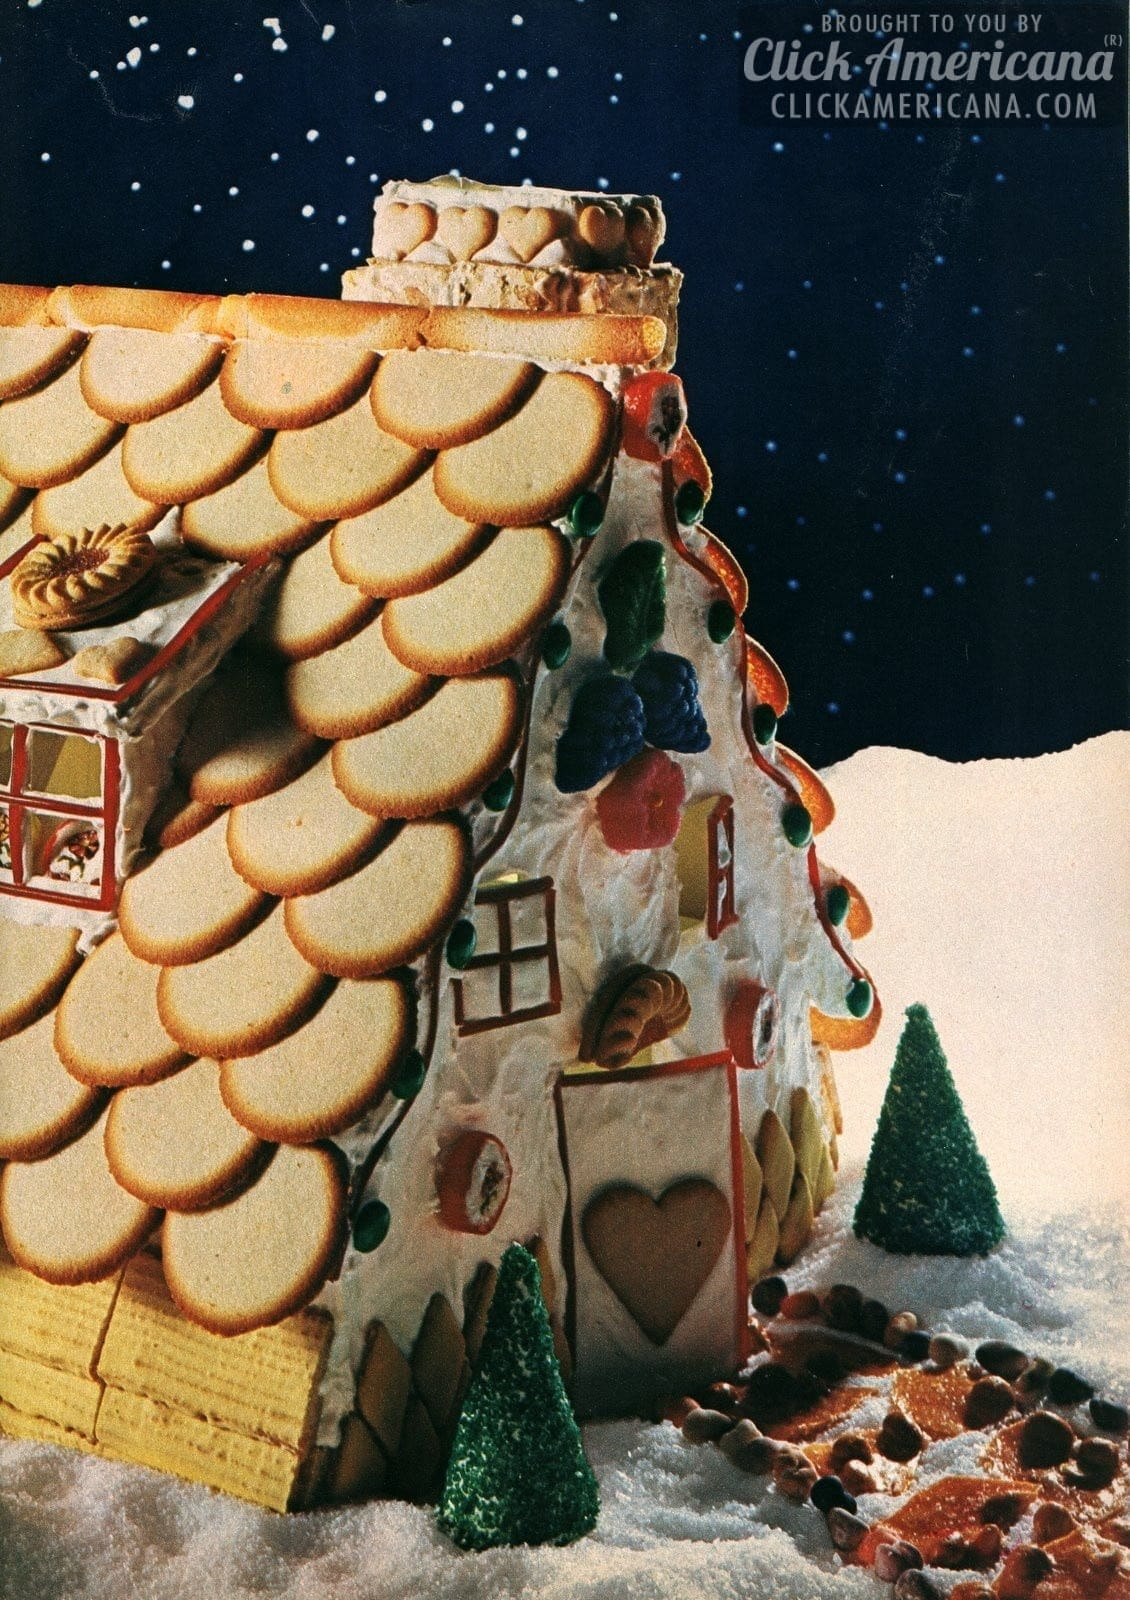 Make A Cookie House For Christmas 1967 Click Americana